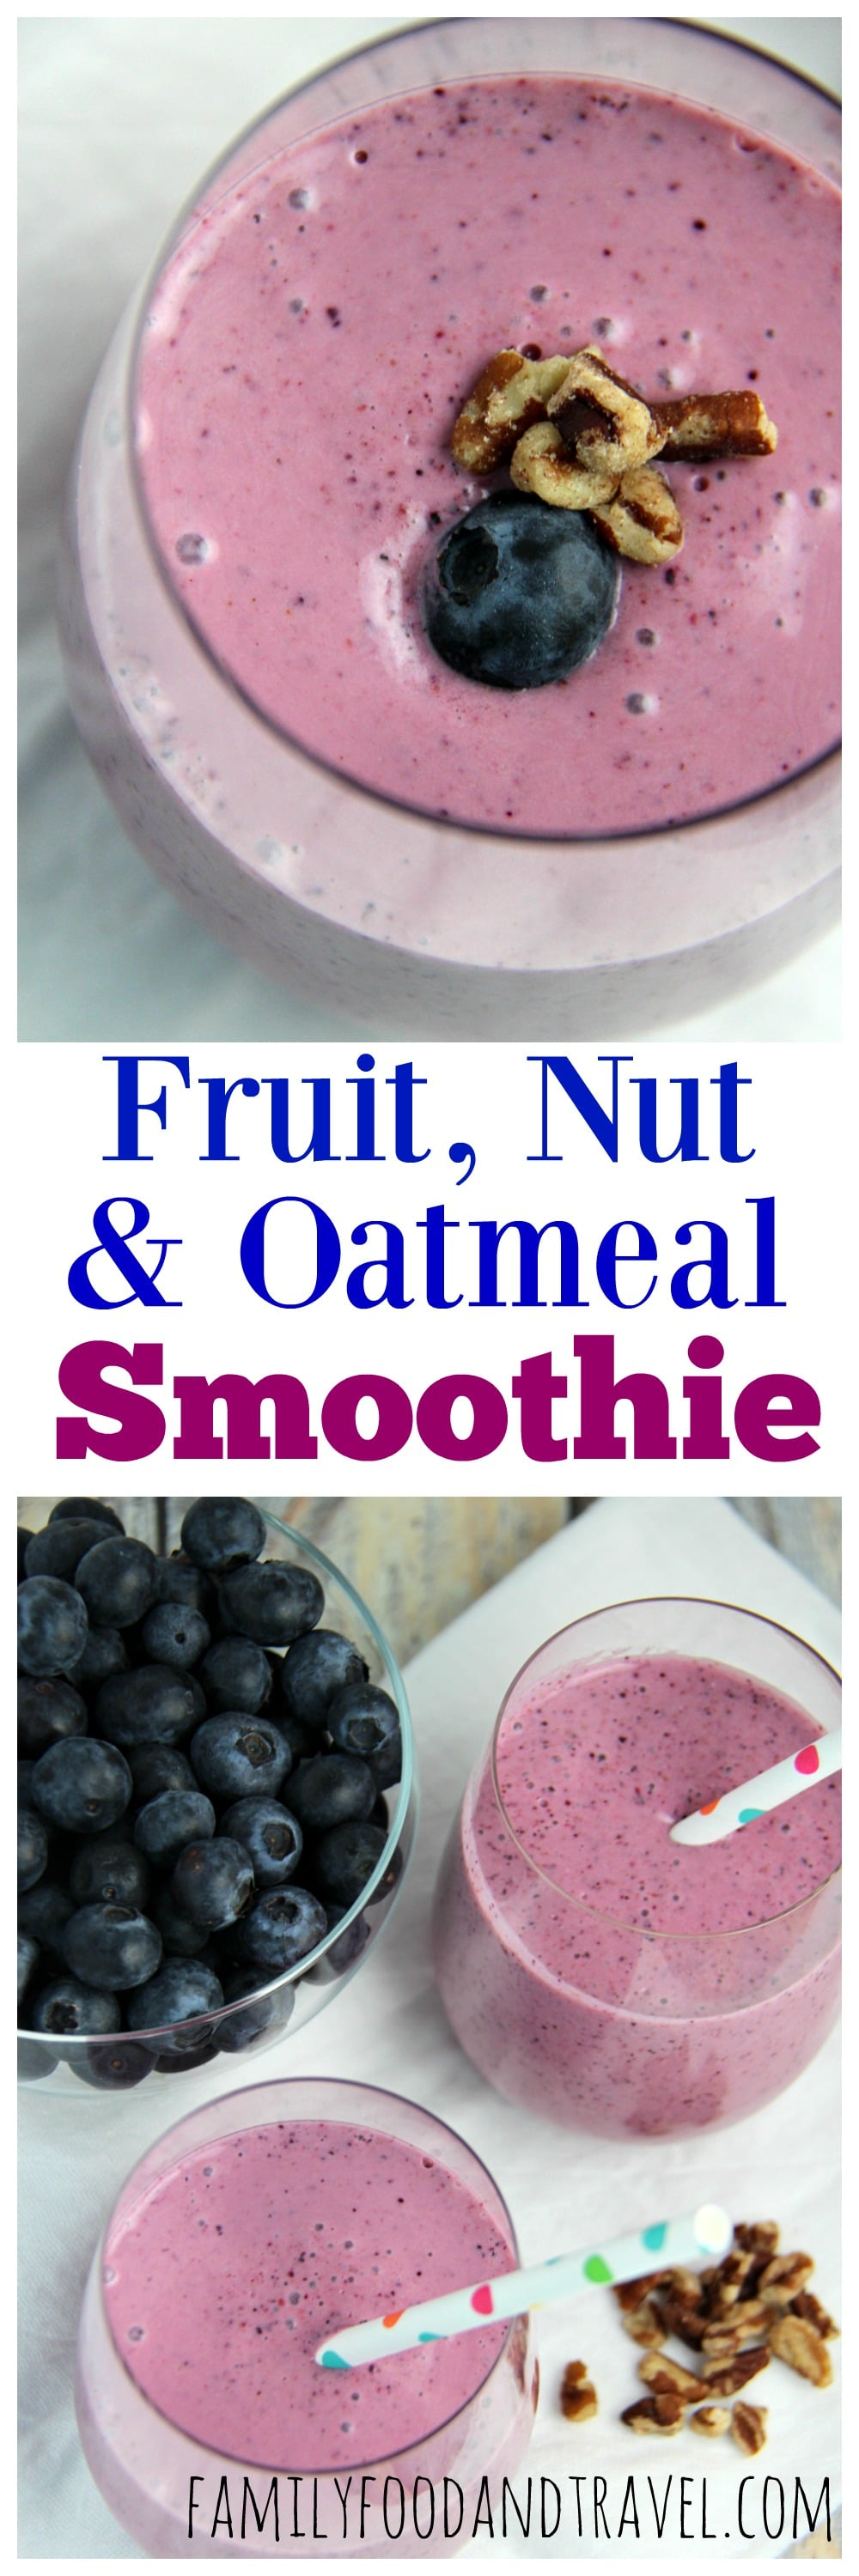 Fruit Nut and Oatmeal Smoothie collage